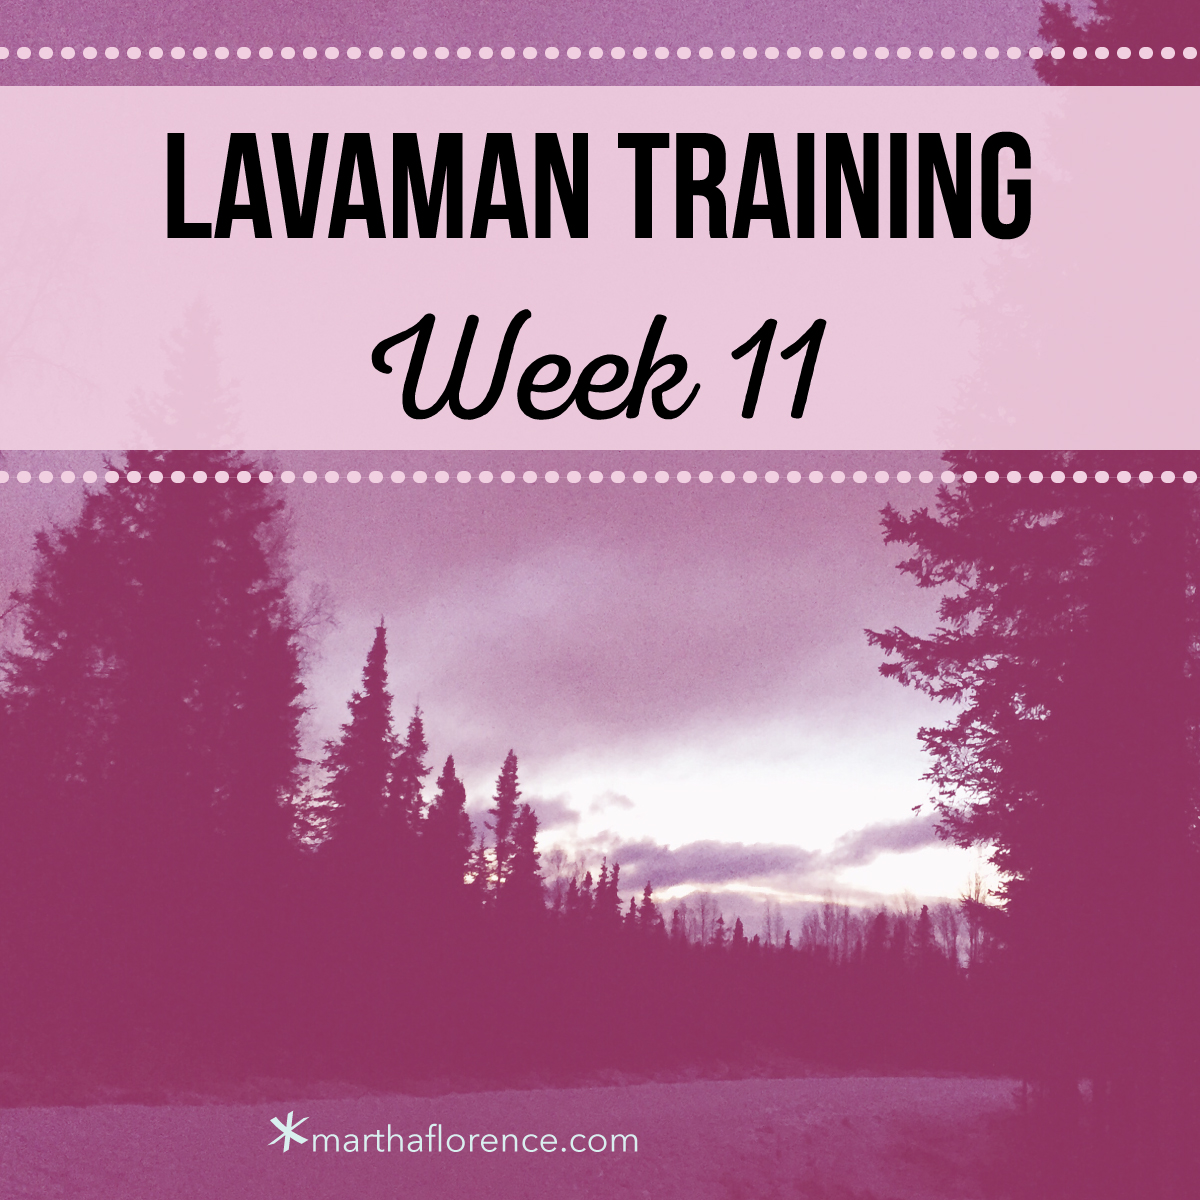 lavaman-training-week-11